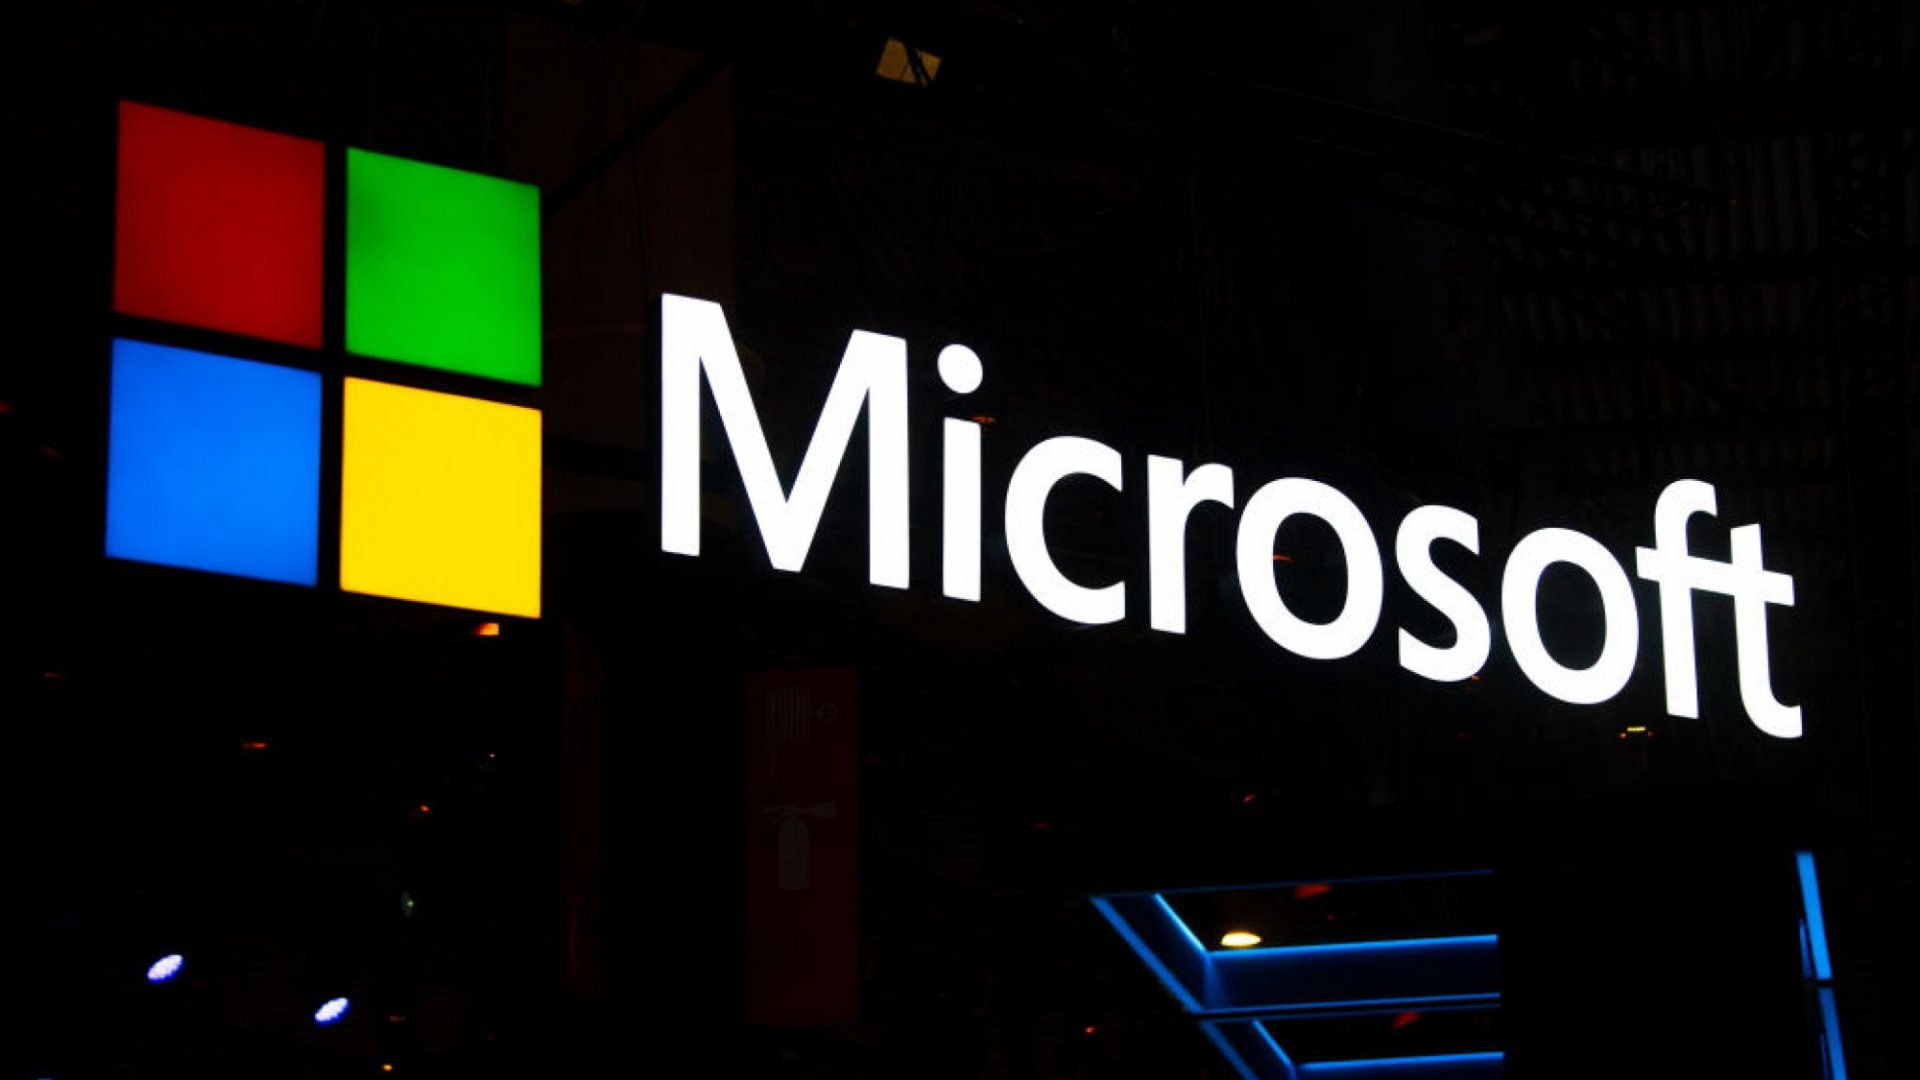 Microsoft Just Did the 1 Thing No Brand Should Ever Do